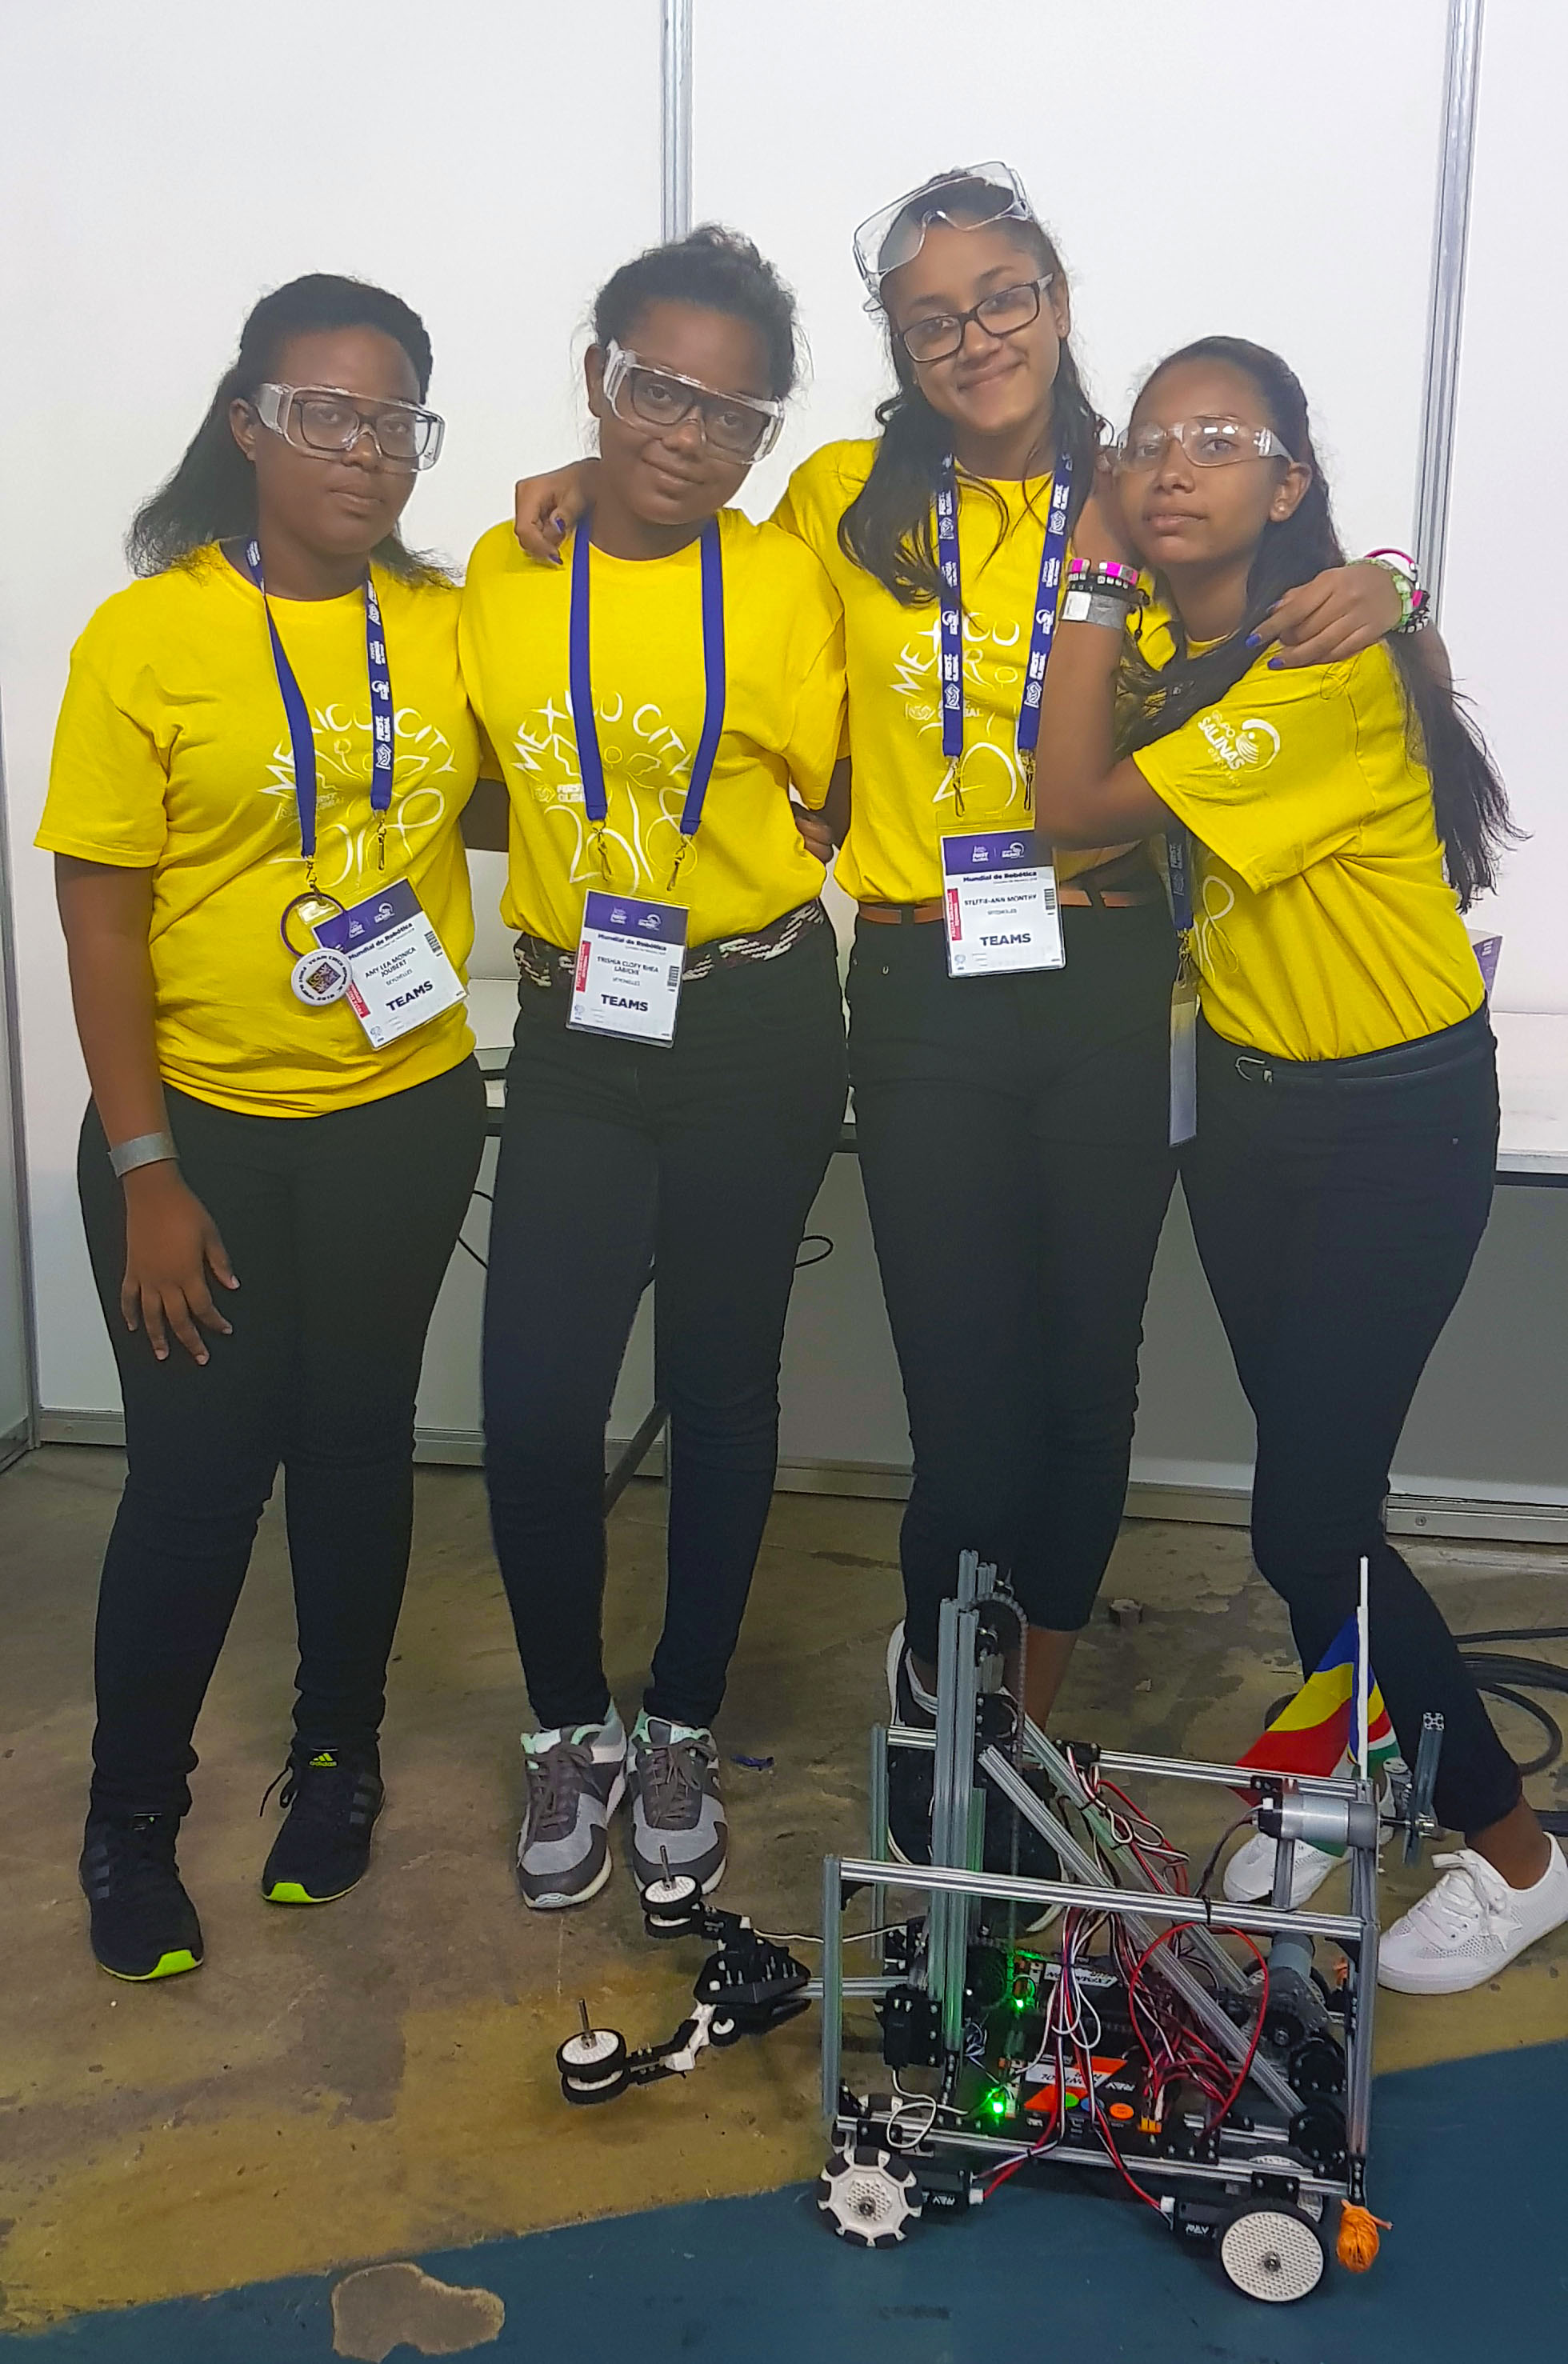 four girls in yellow shirts standing with a robot